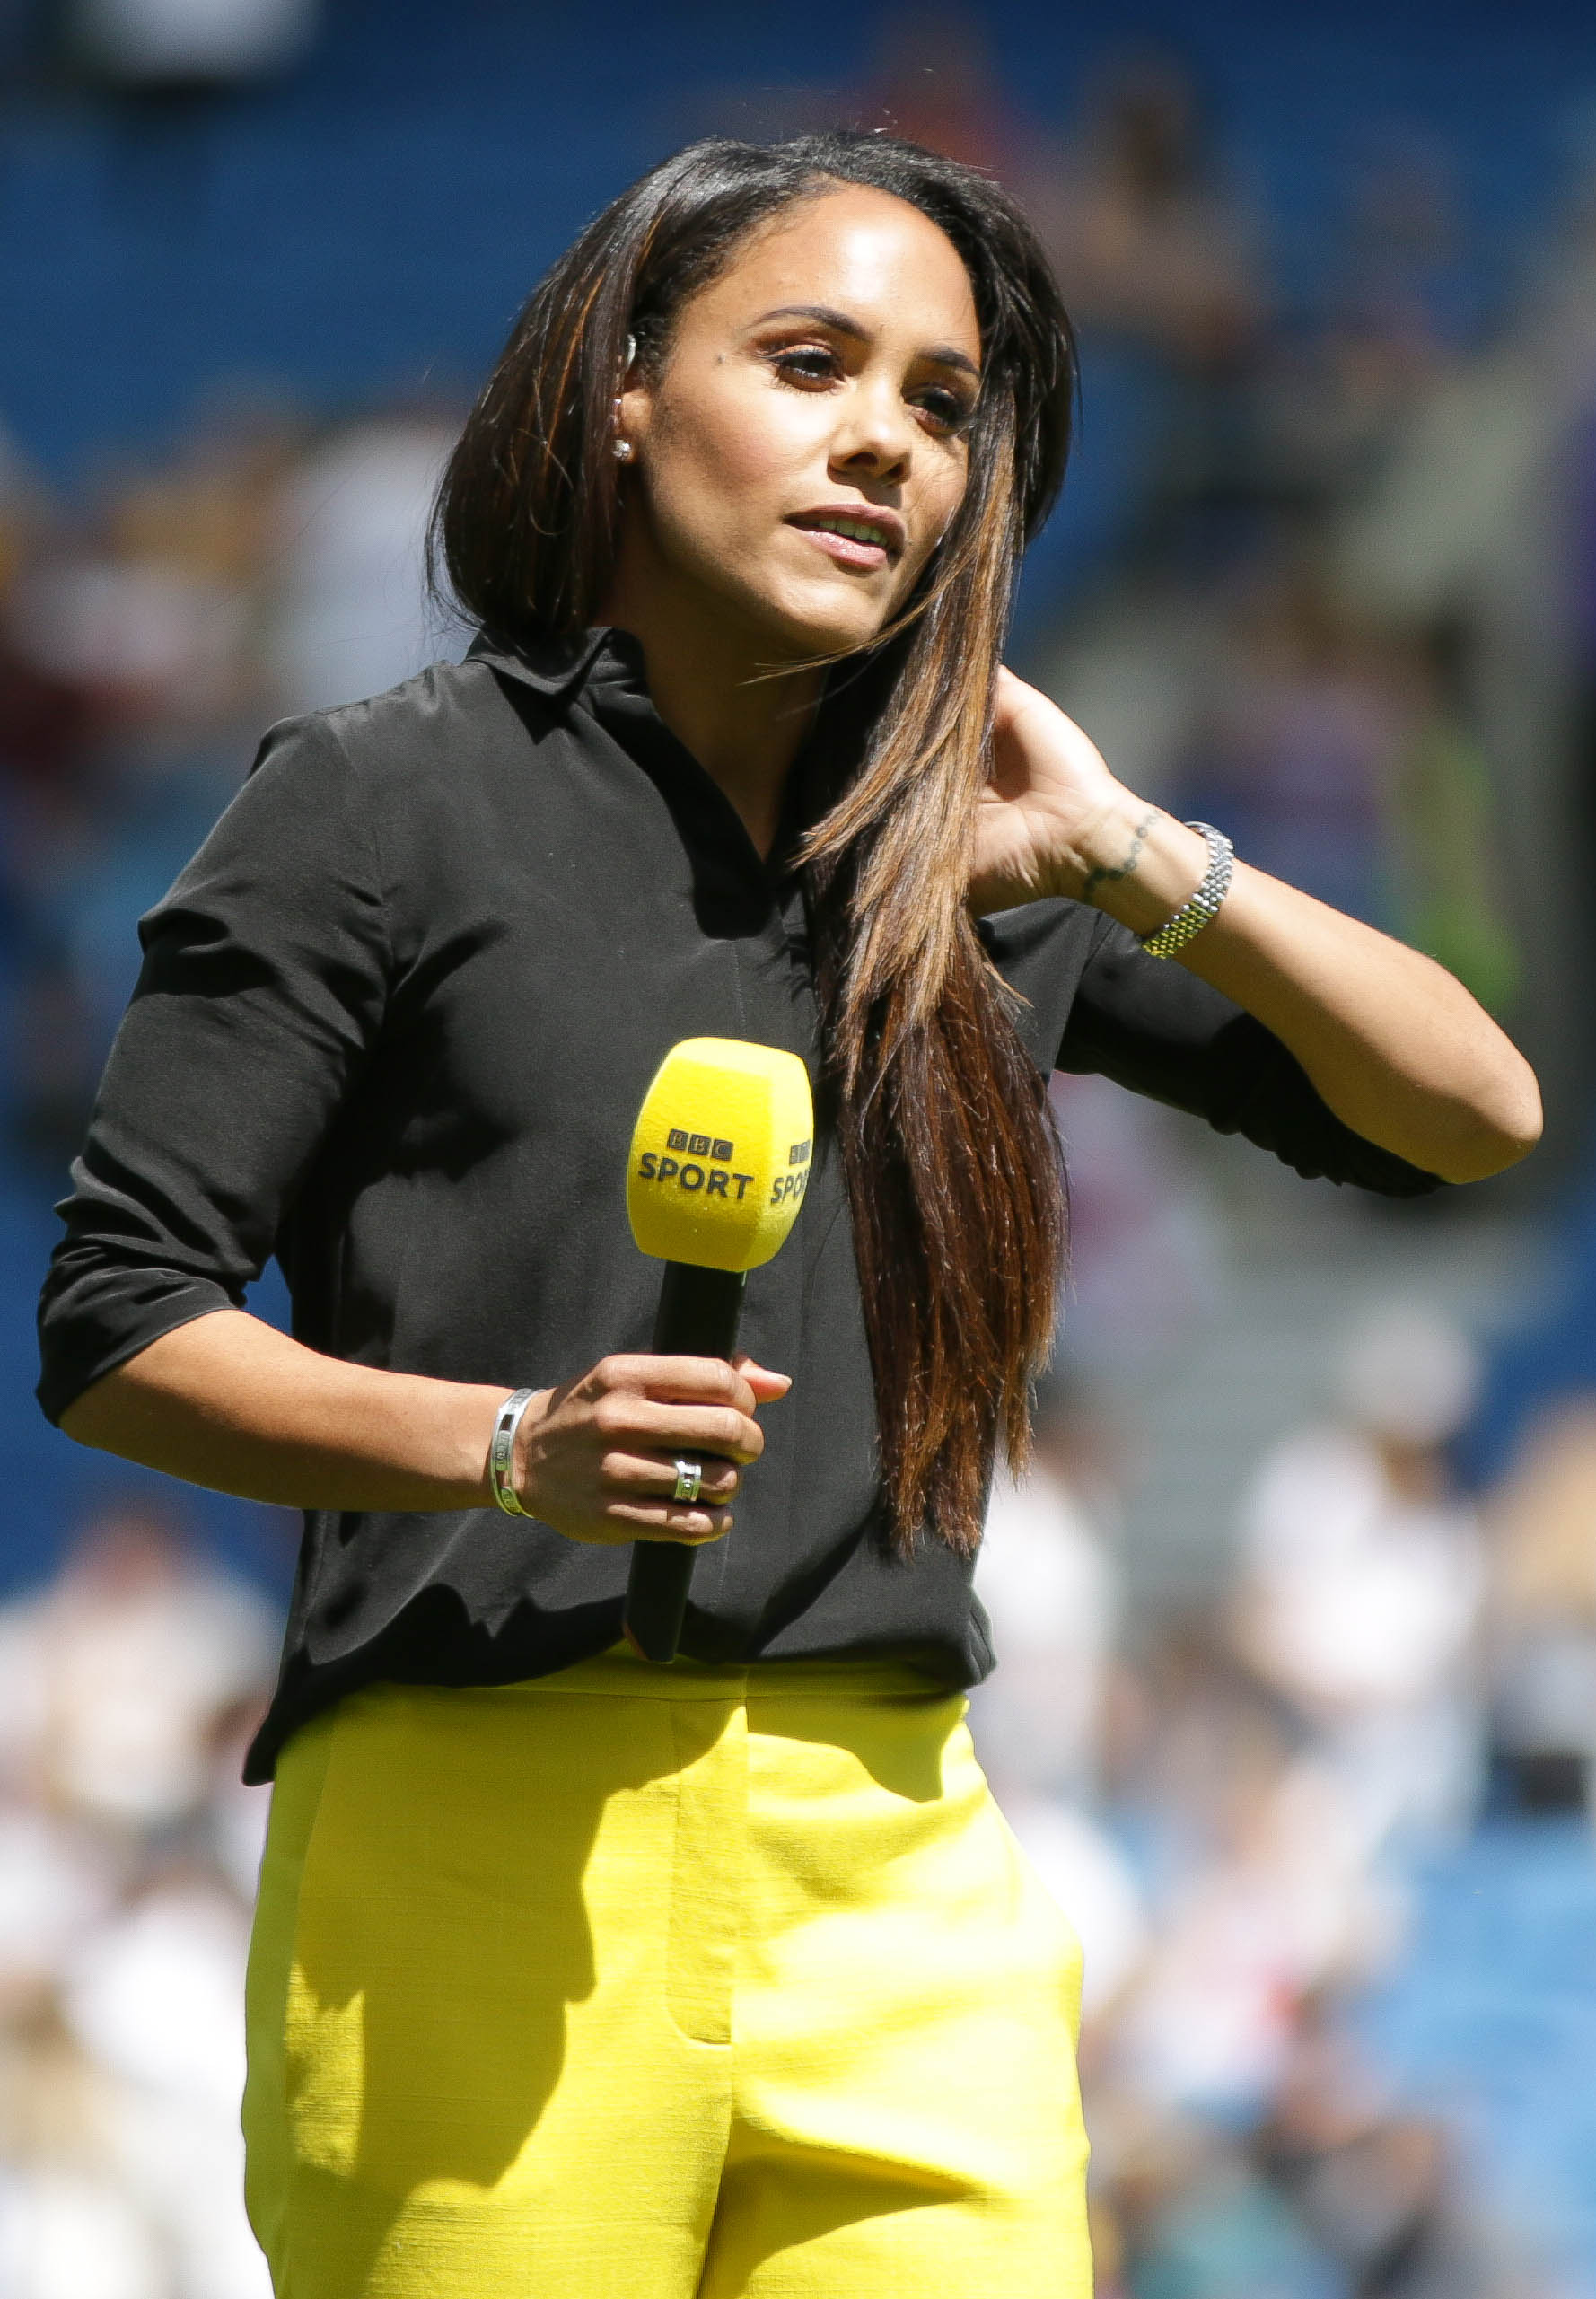 Alex Scott Footballer Born 1984 Wikipedia Though each patagonia® product is designed and shaped specifically for its intended use, we can generalize our fit descriptions in four ways wikipedia